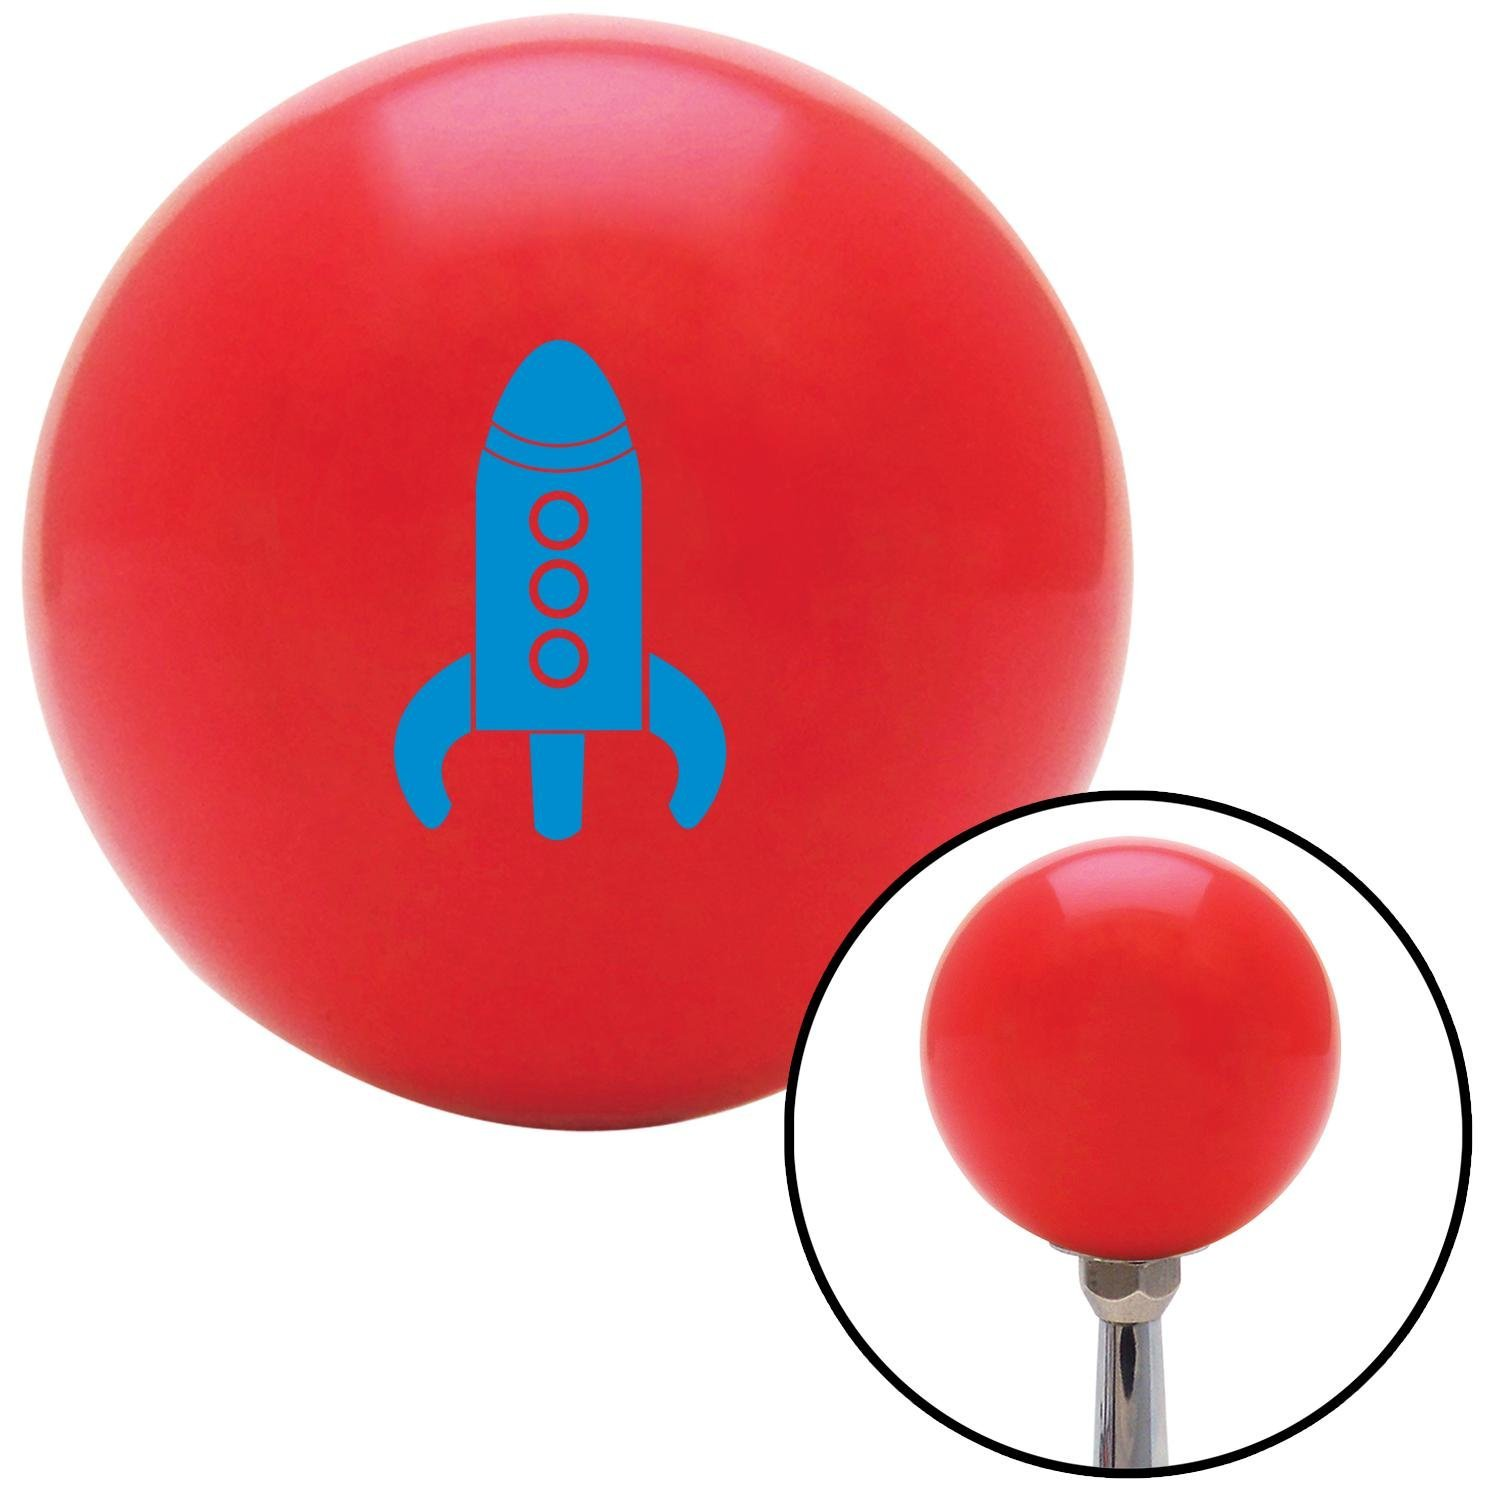 Blue Space Ship American Shifter 102606 Red Shift Knob with M16 x 1.5 Insert